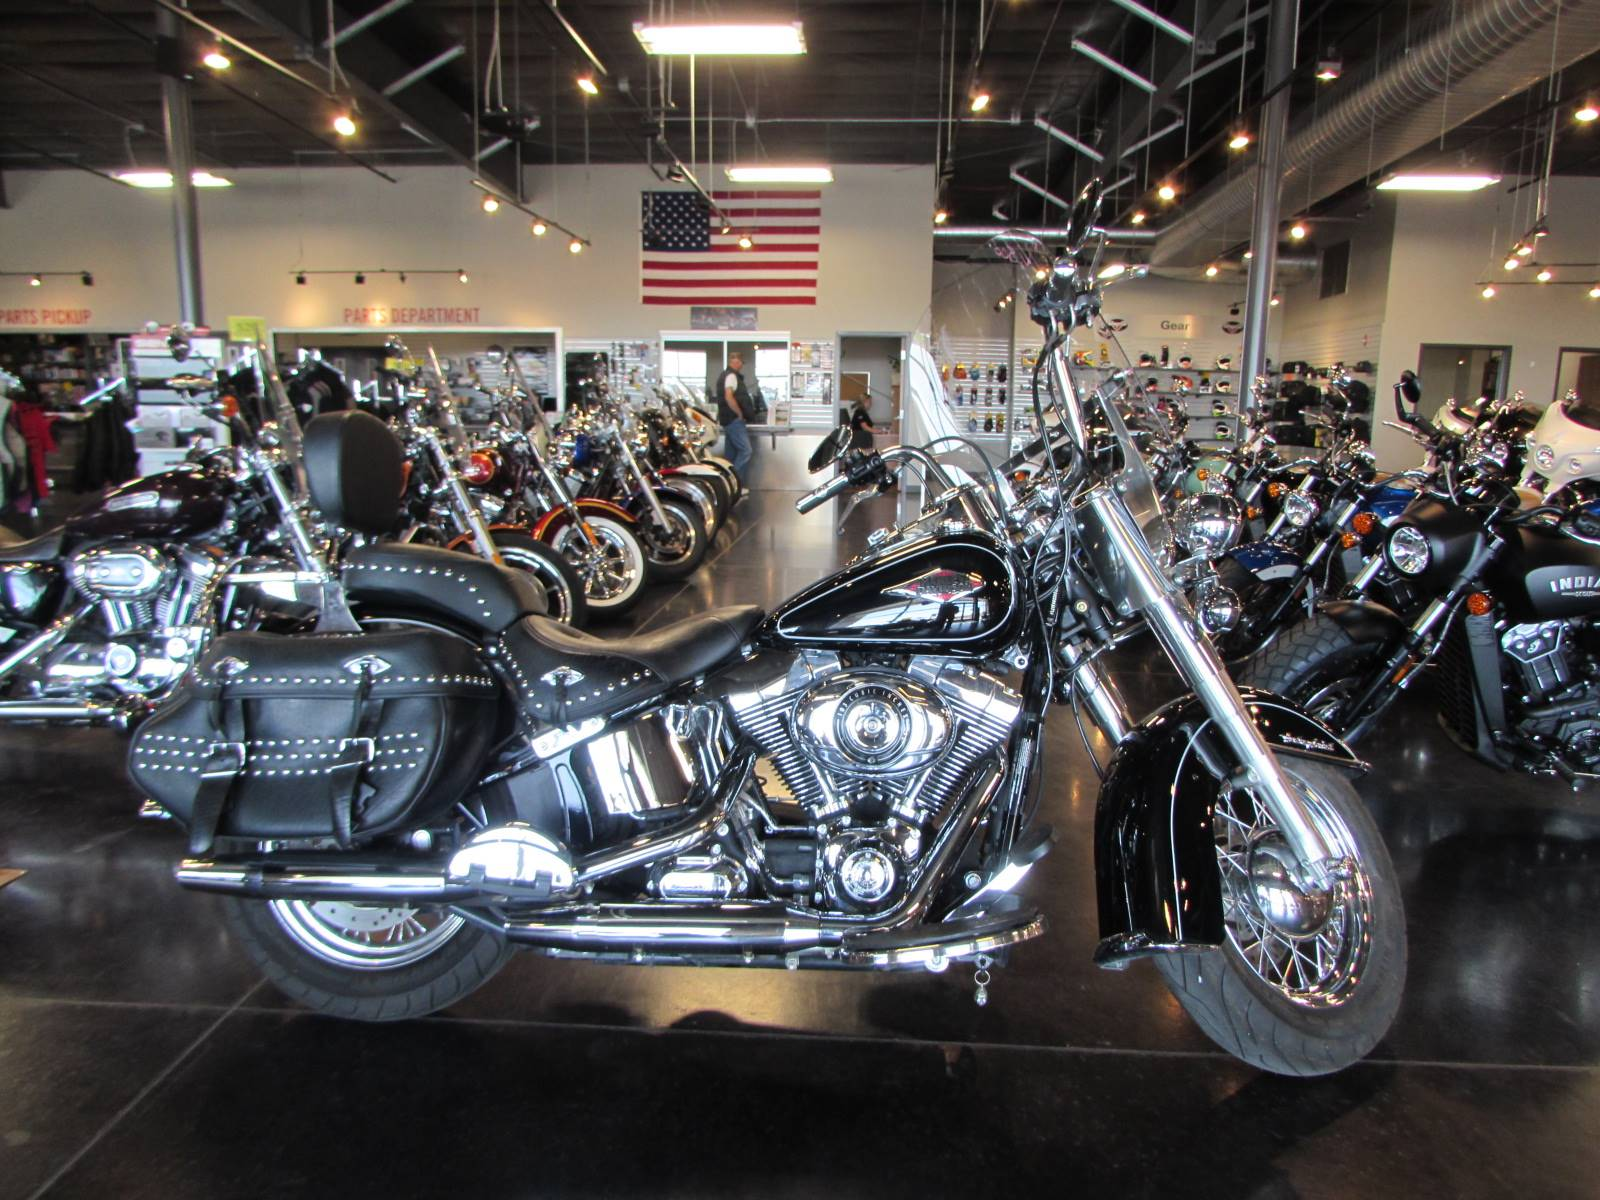 2012 Harley Davidson Heritage Softail Classic Motorcycles Pasco In Washington